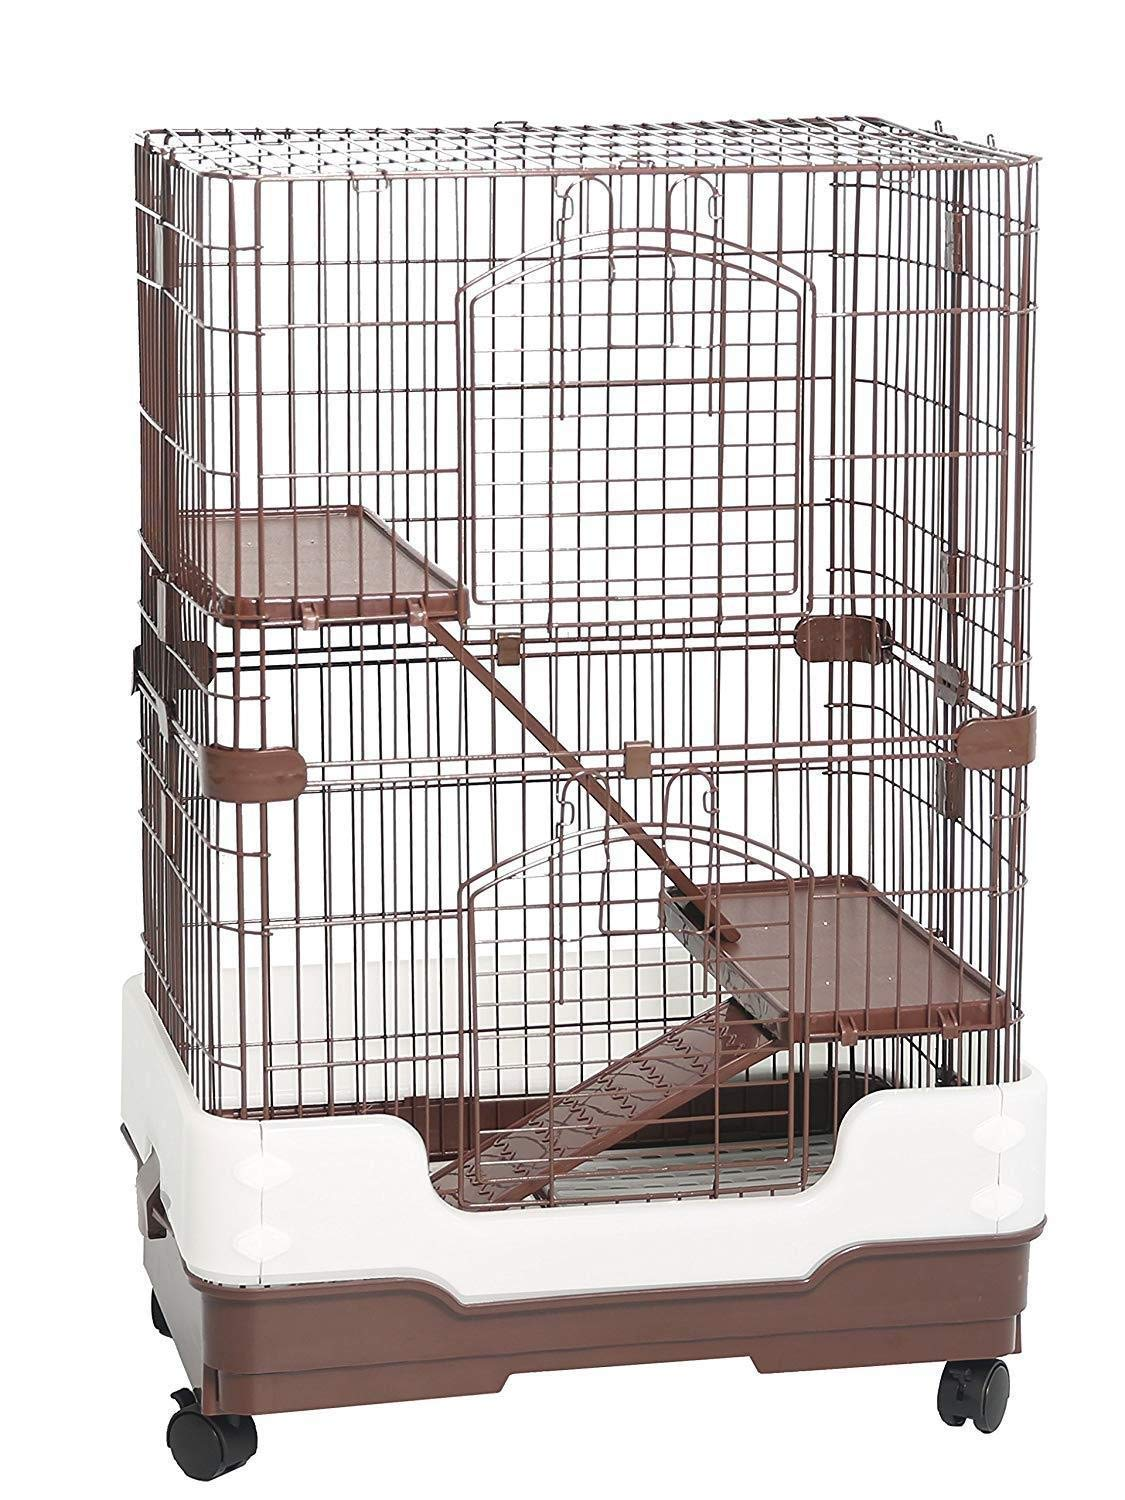 Homey Pet 3 Tiers Chinchilla Hamster Rat Ferret Cage with Sleeping Platform, Pull Out Tray, Urine Guard and Lockable Casters, Brown, L26 x W17 x H38 by Homey Pet